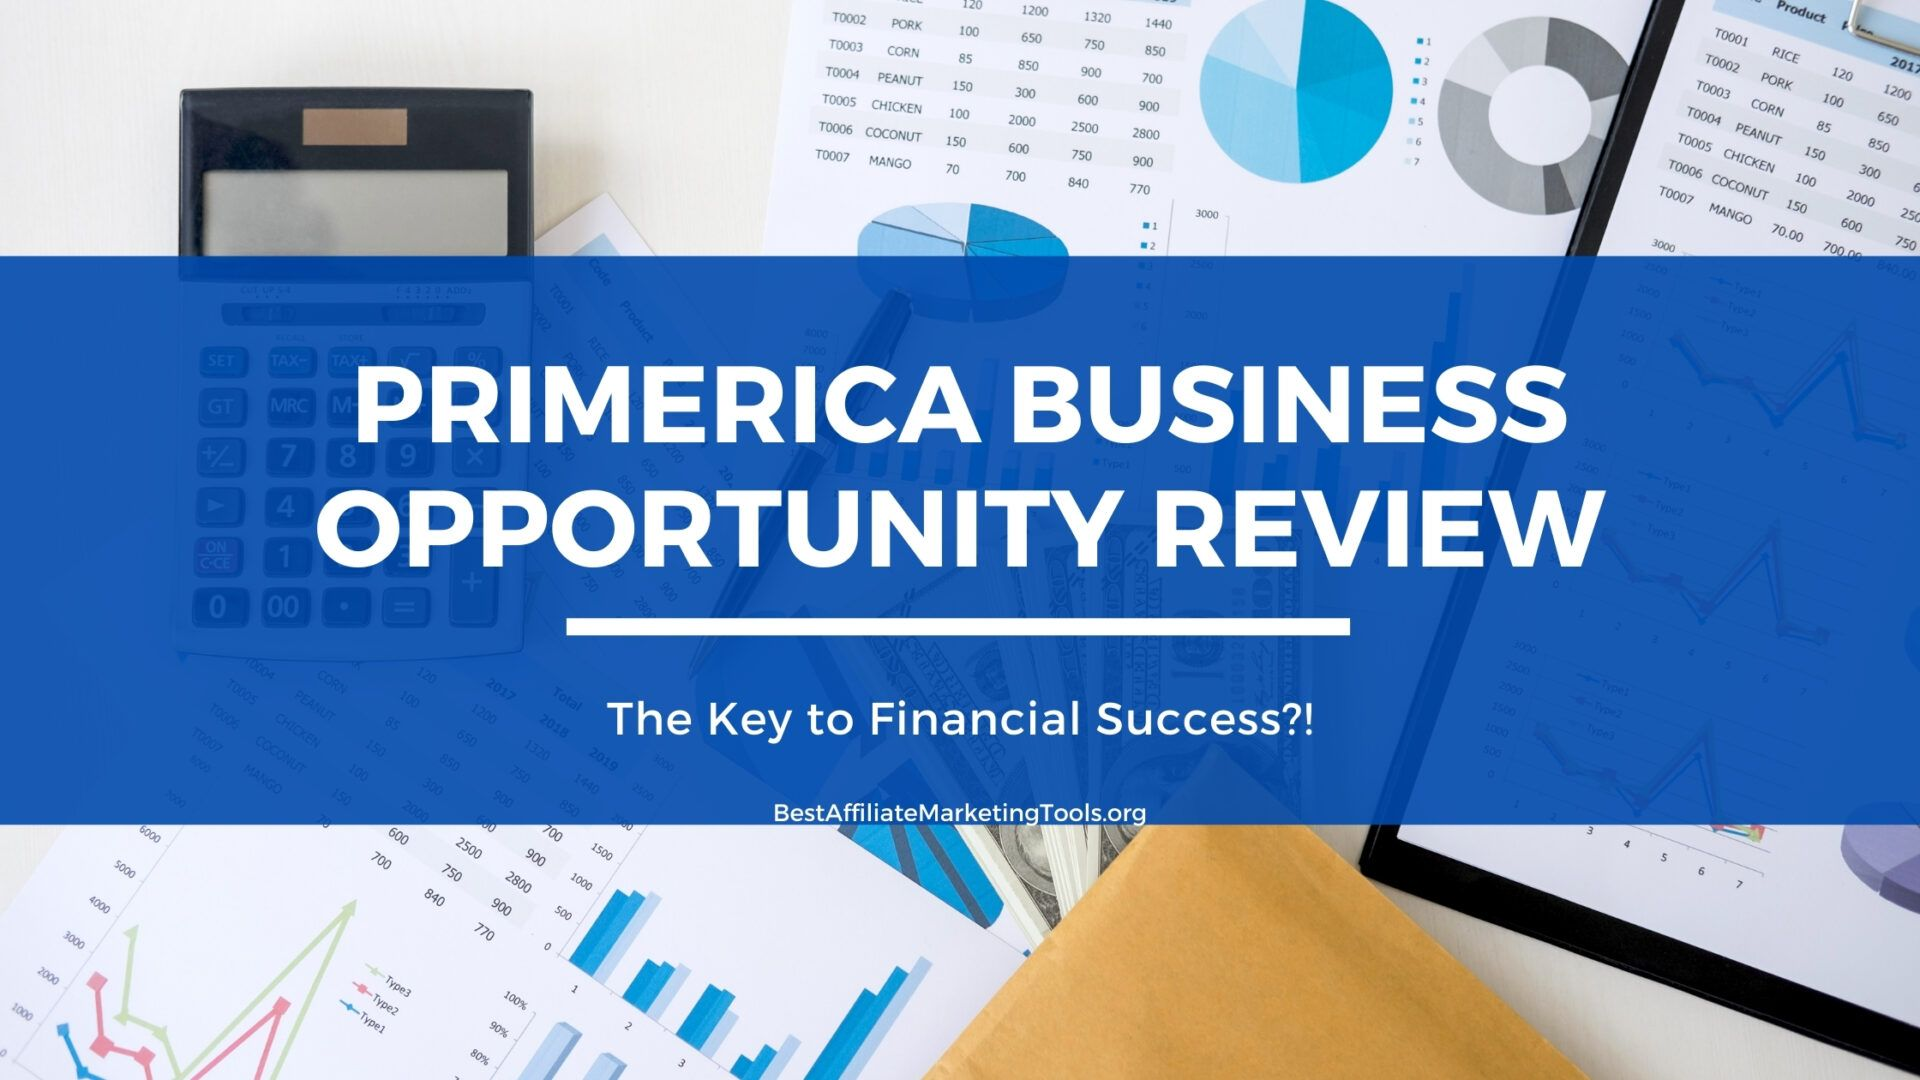 Primerica Business Opportunity Review